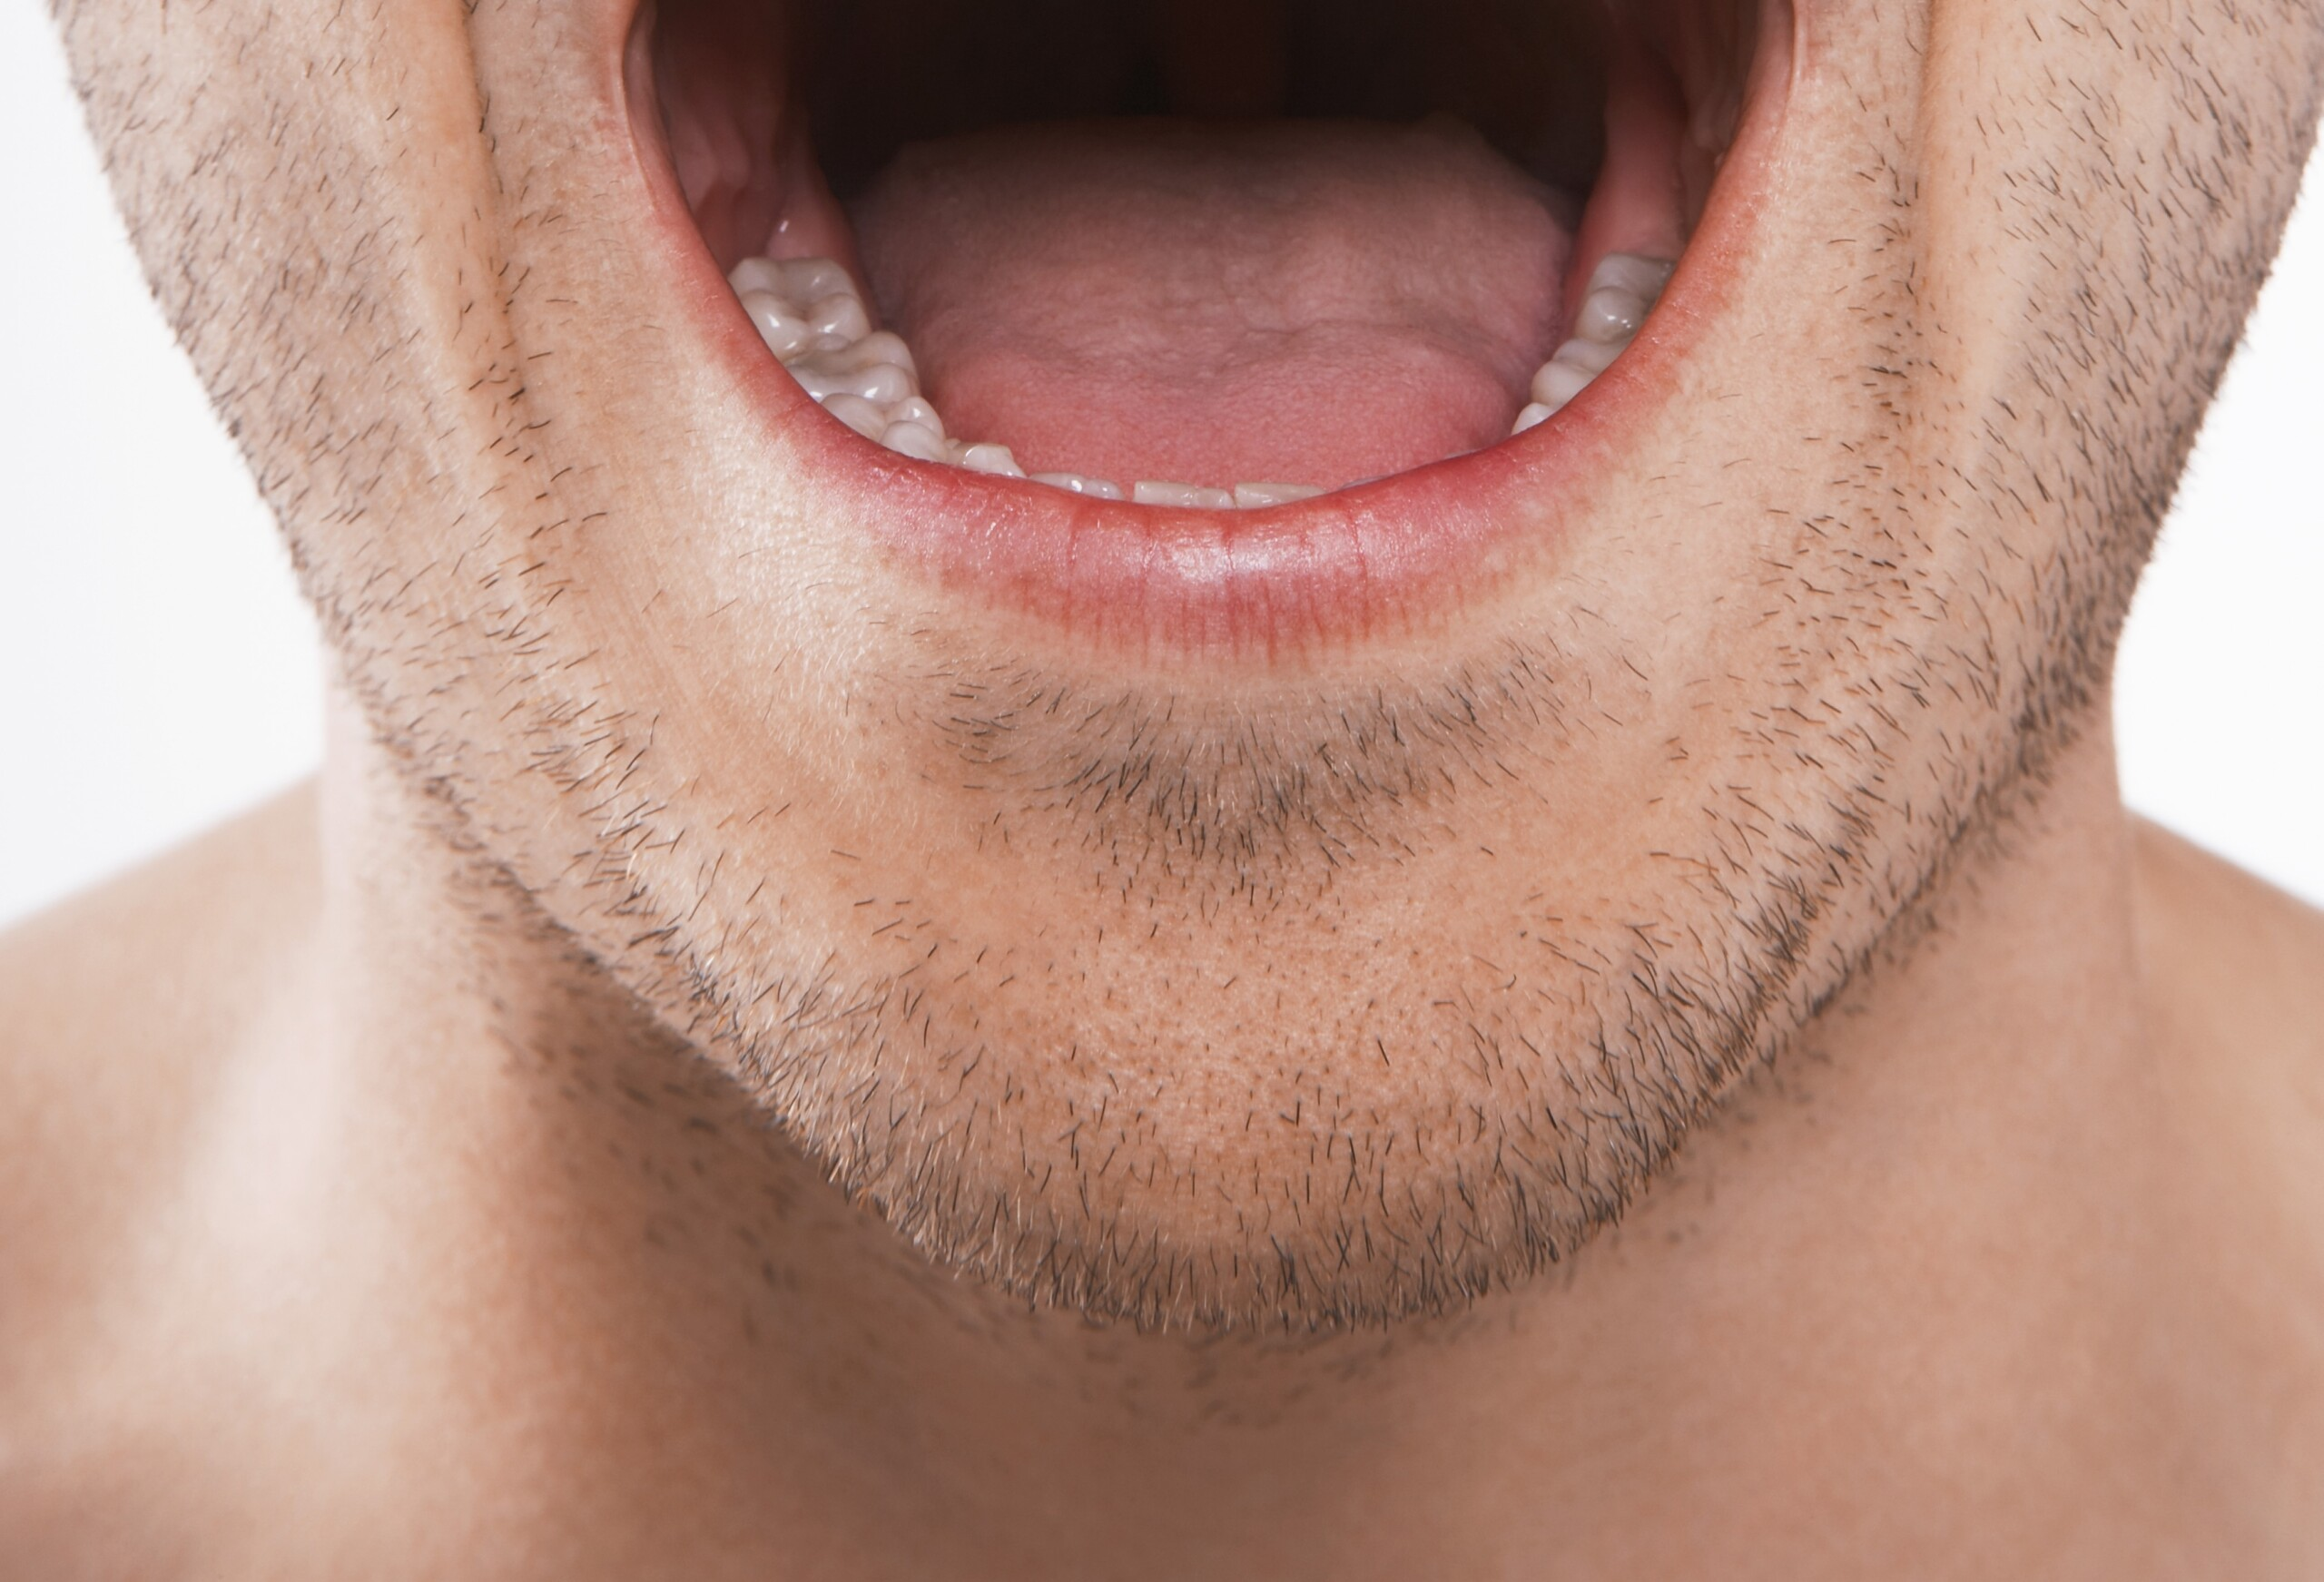 Can HPV of Cervical Cancer Cause Mouth Cancer?